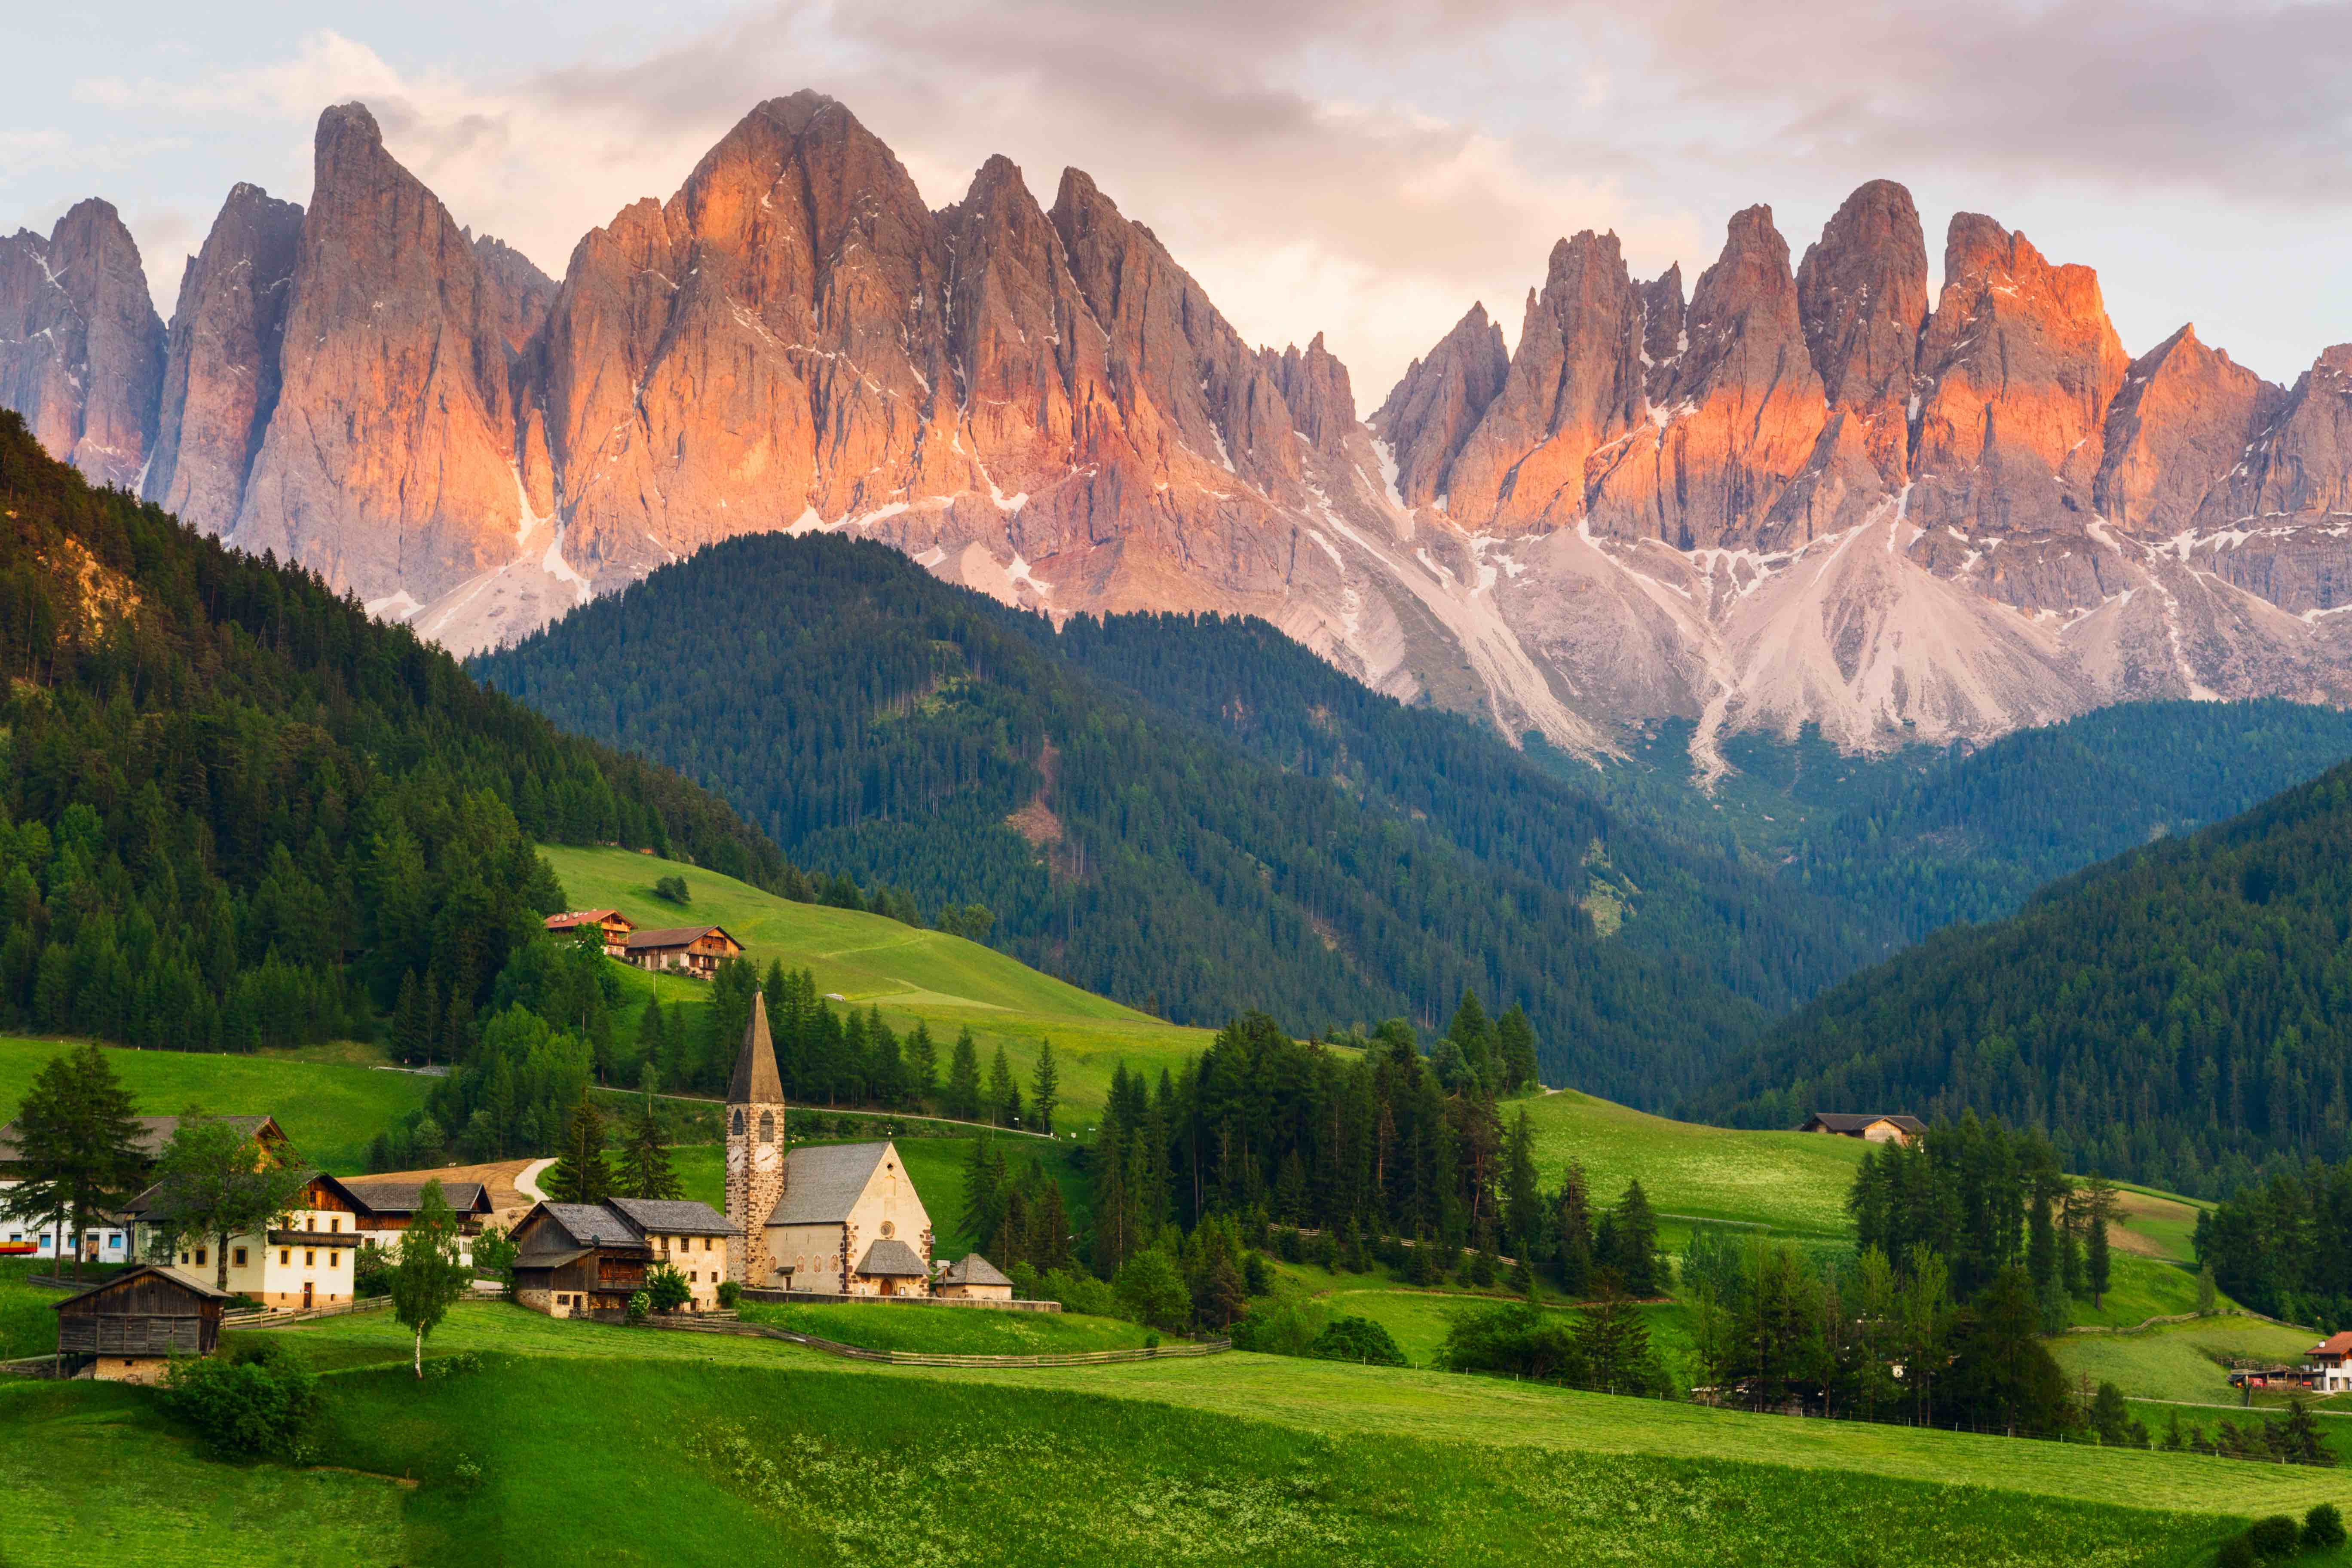 A quaint village at the foot of The Dolomites, Italy.